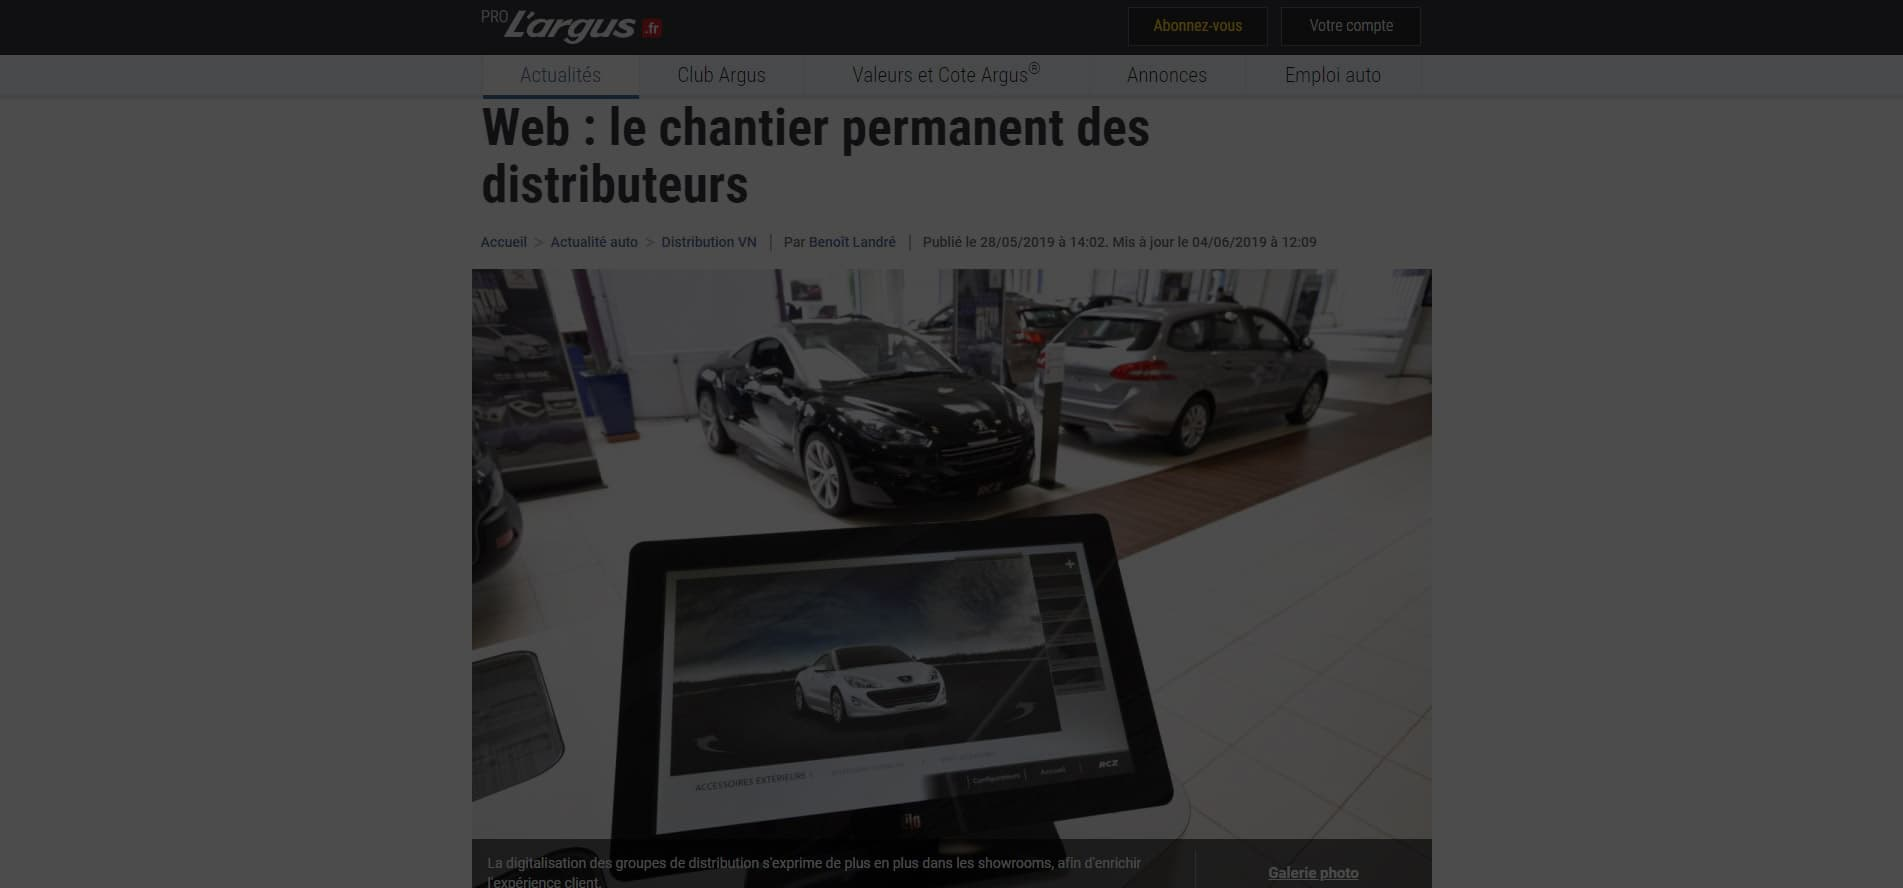 Web : le chantier permanent des distributeurs